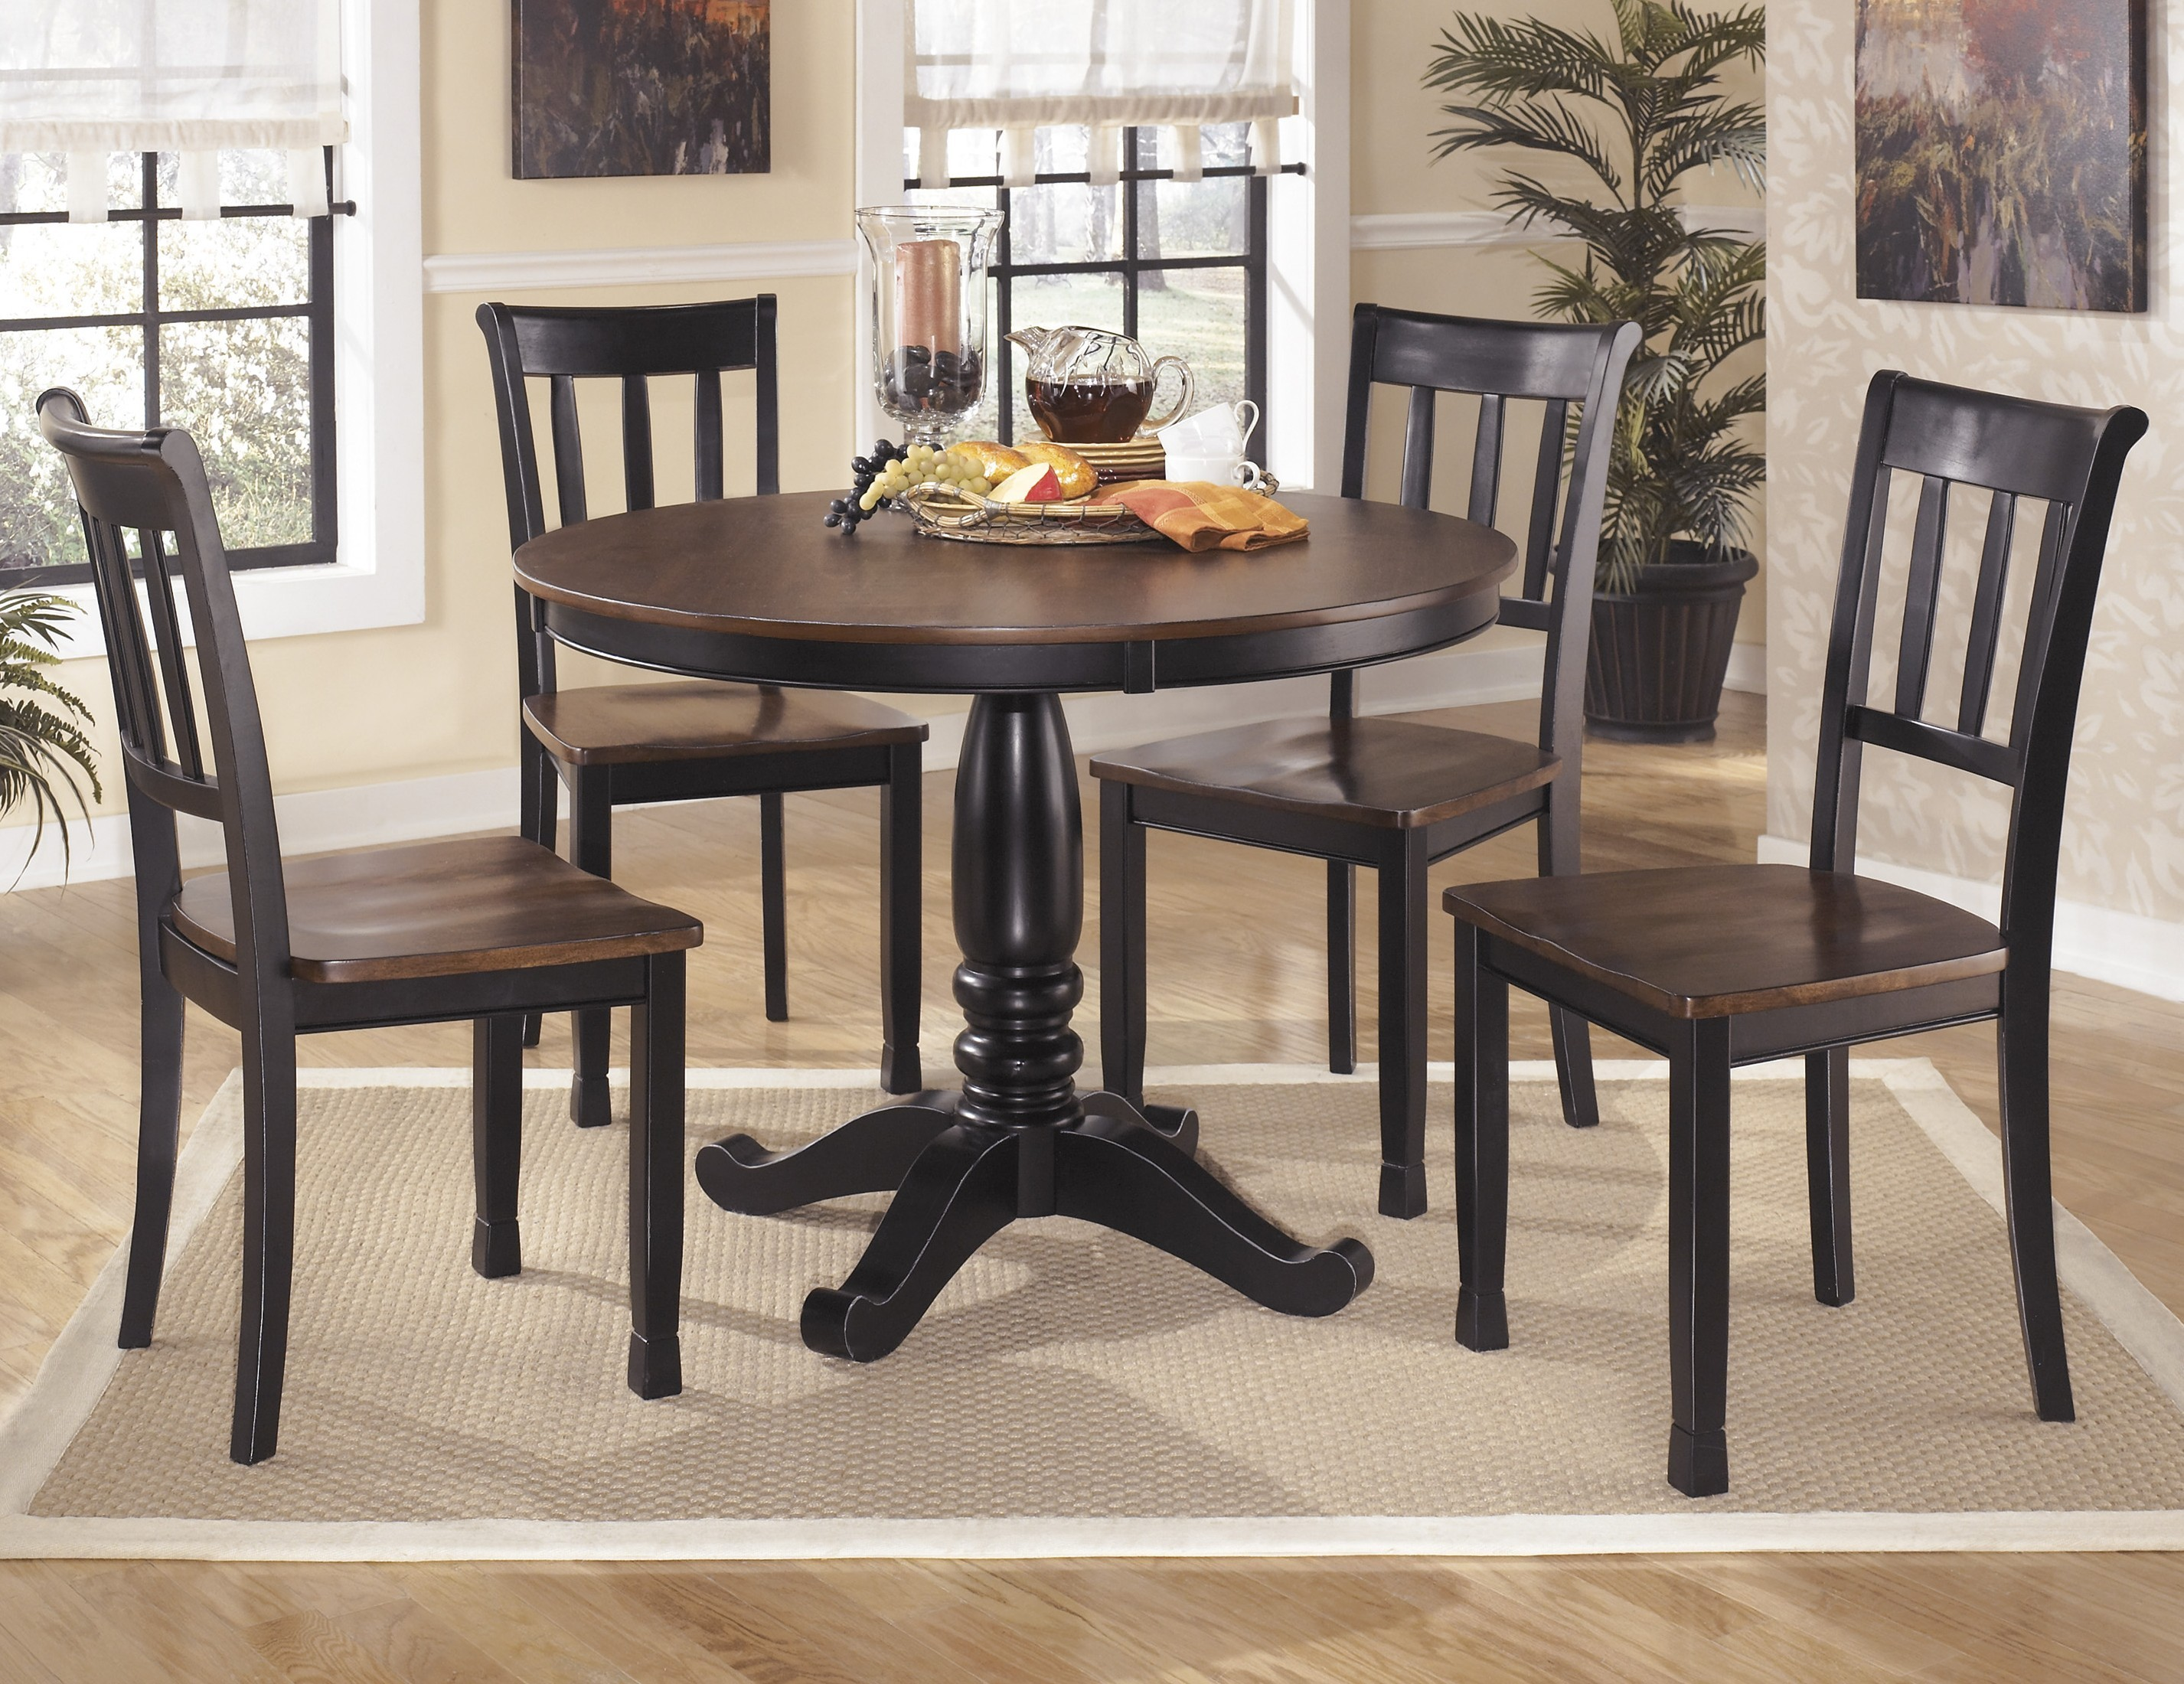 Lofty Inspiration Ashley Furniture Dining Room Sets Discontinued 13